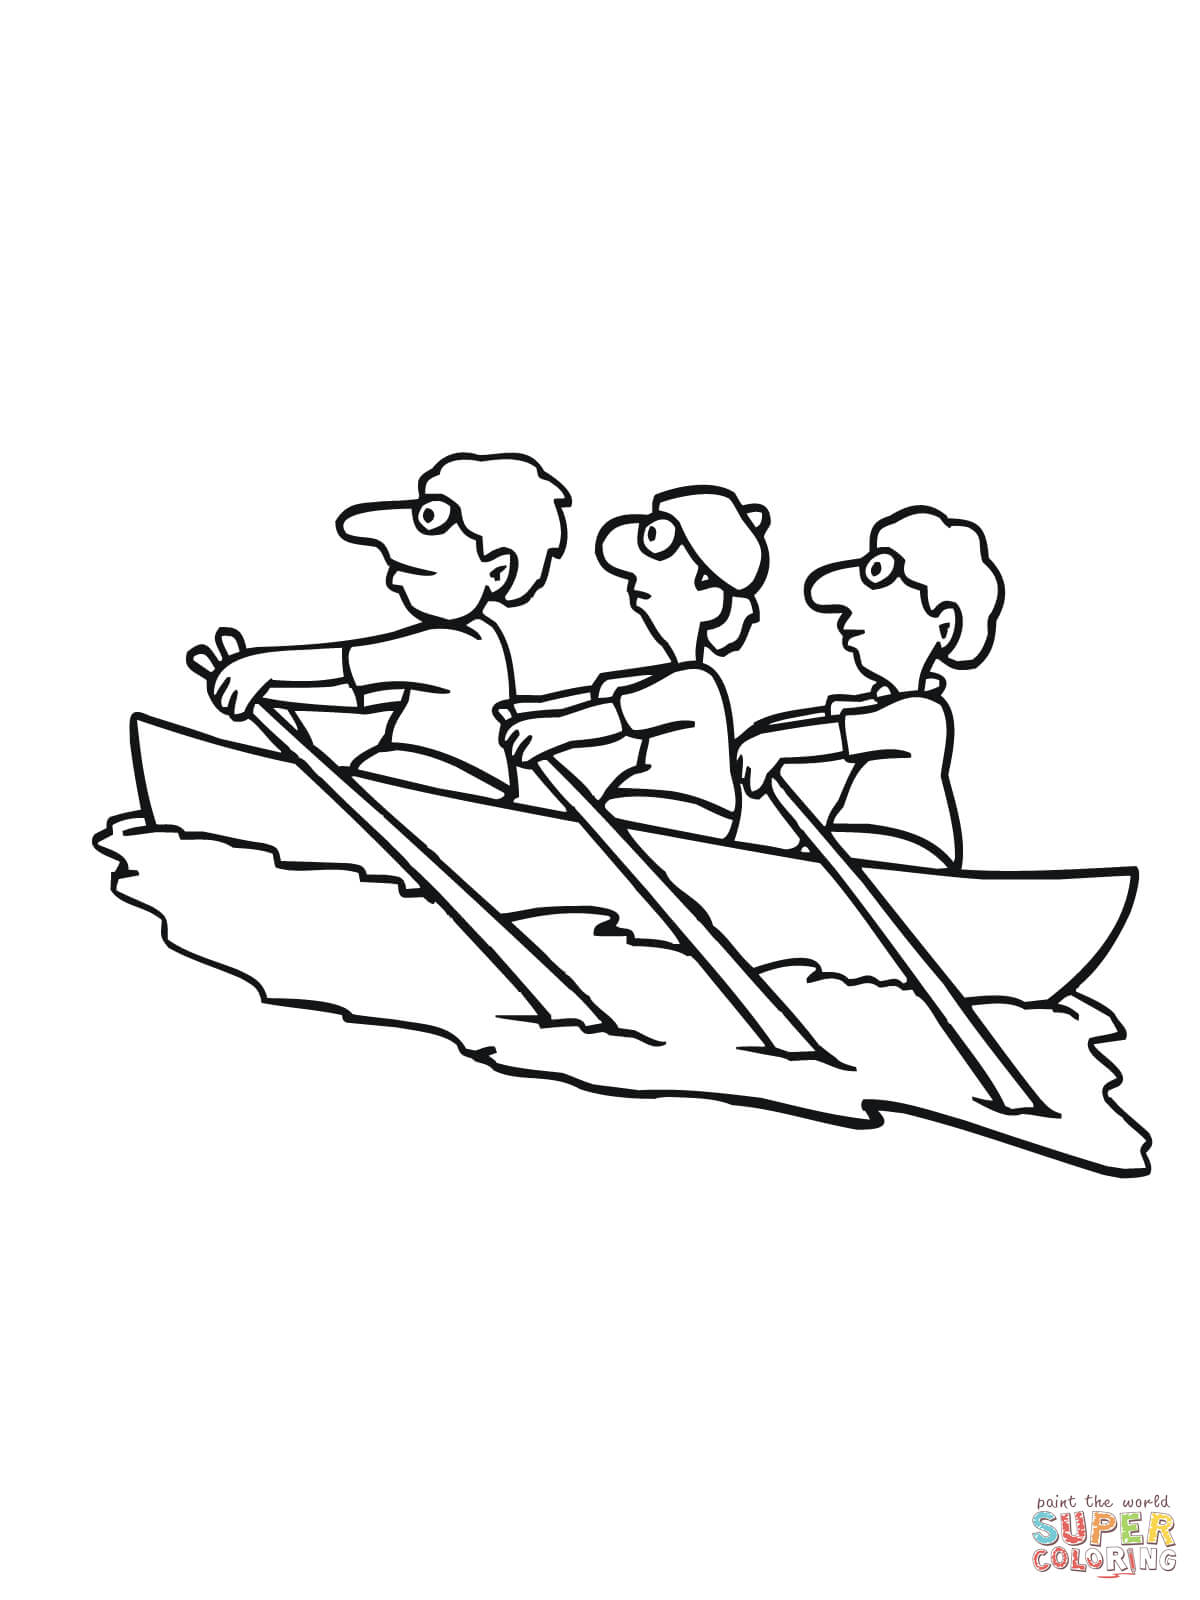 kids coloring pages rowing,printable,coloring pages